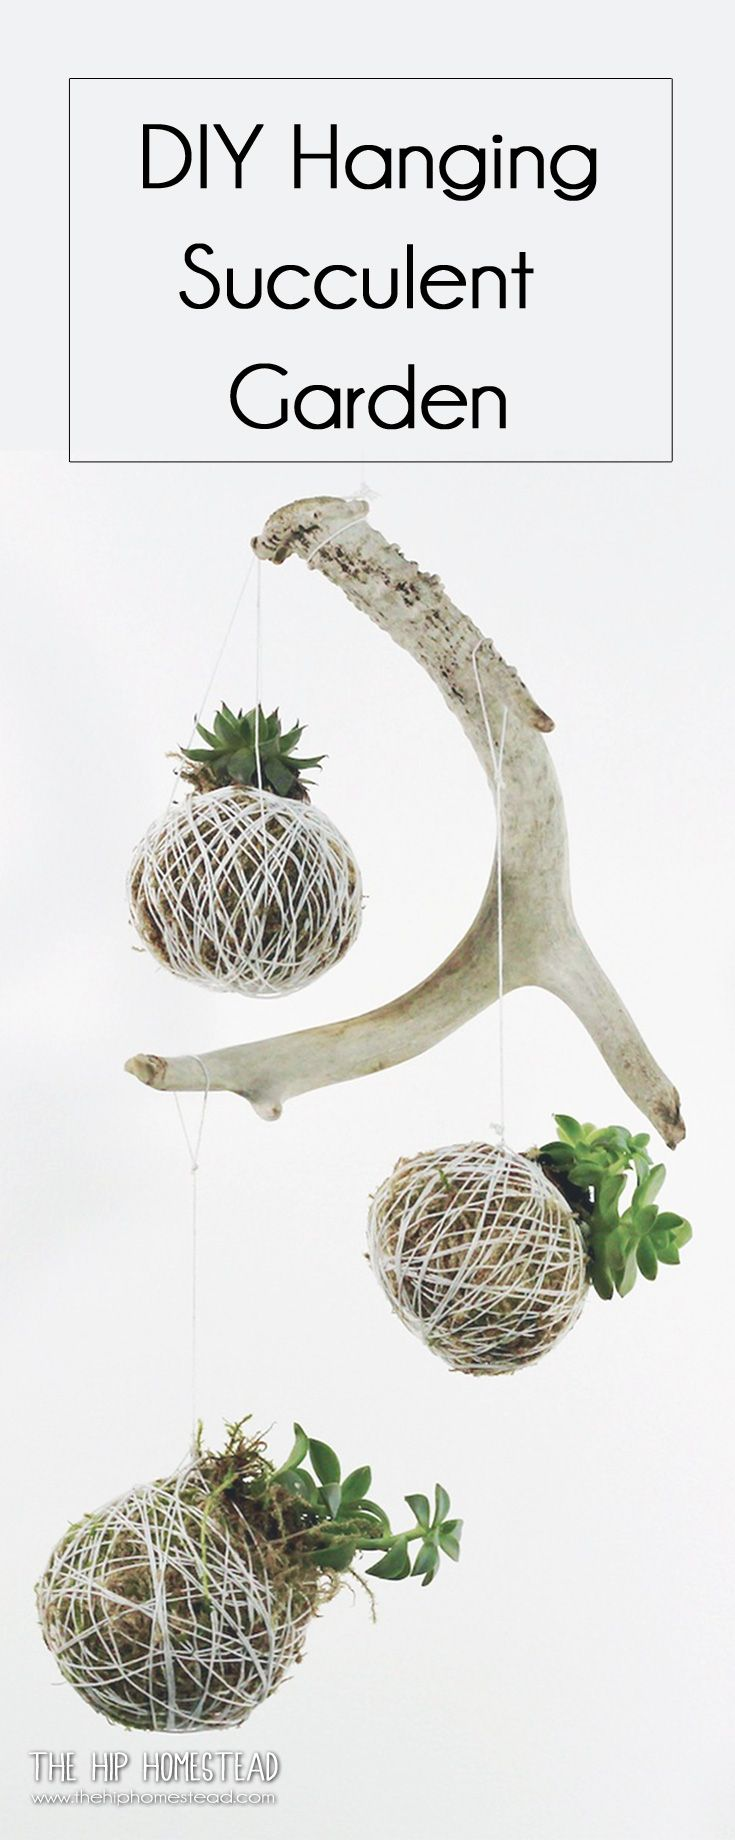 How to make a hanging succulent garden - The Hip Homestead #diy #succulent #hanginggarden